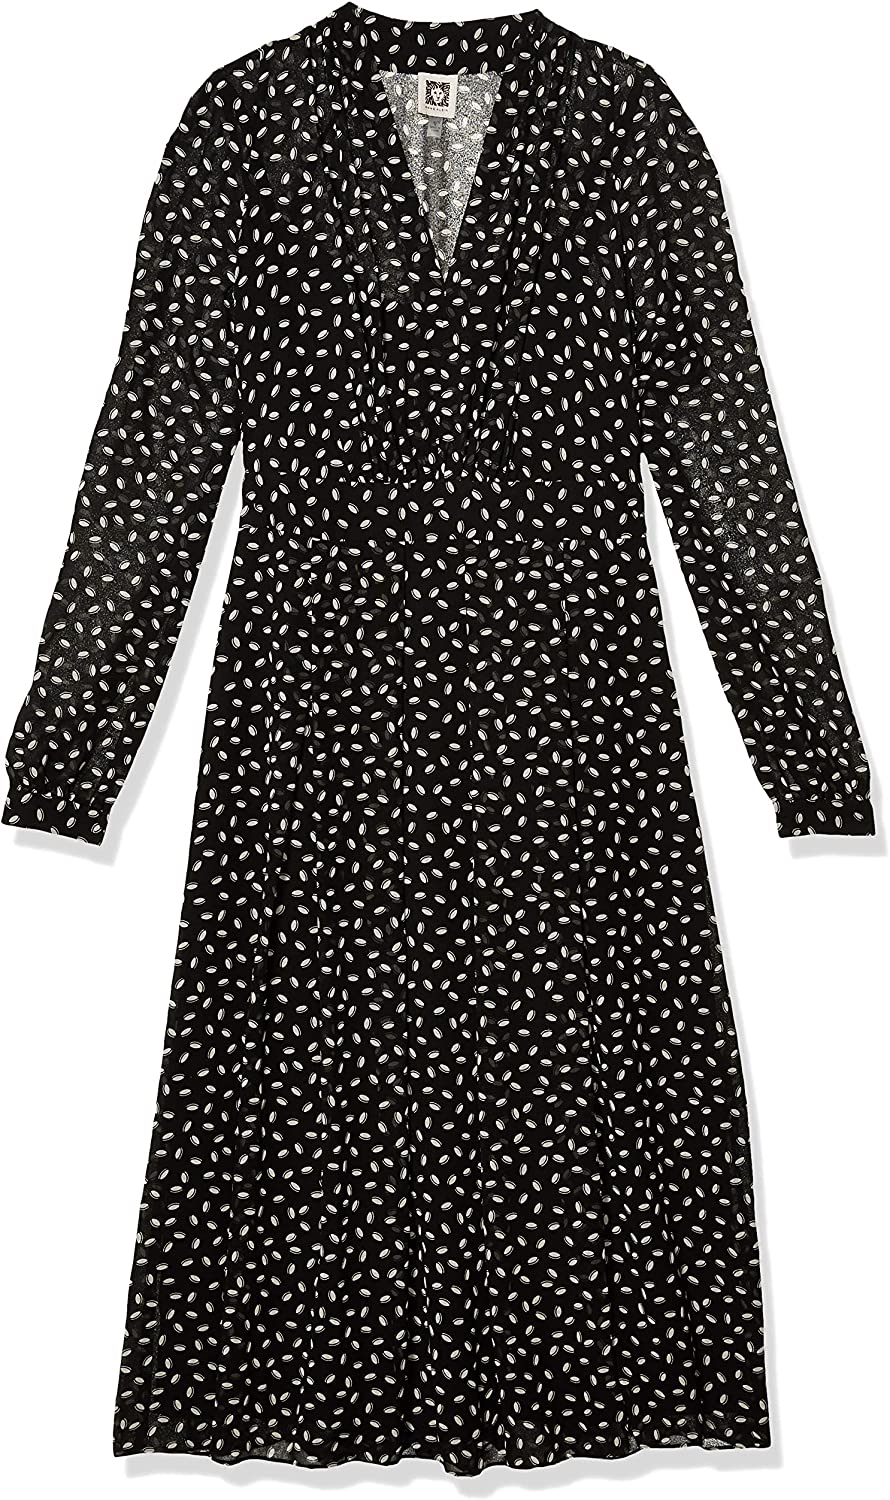 Anne Klein Women's Long Sleeve Vneck Fit and Flare Dress